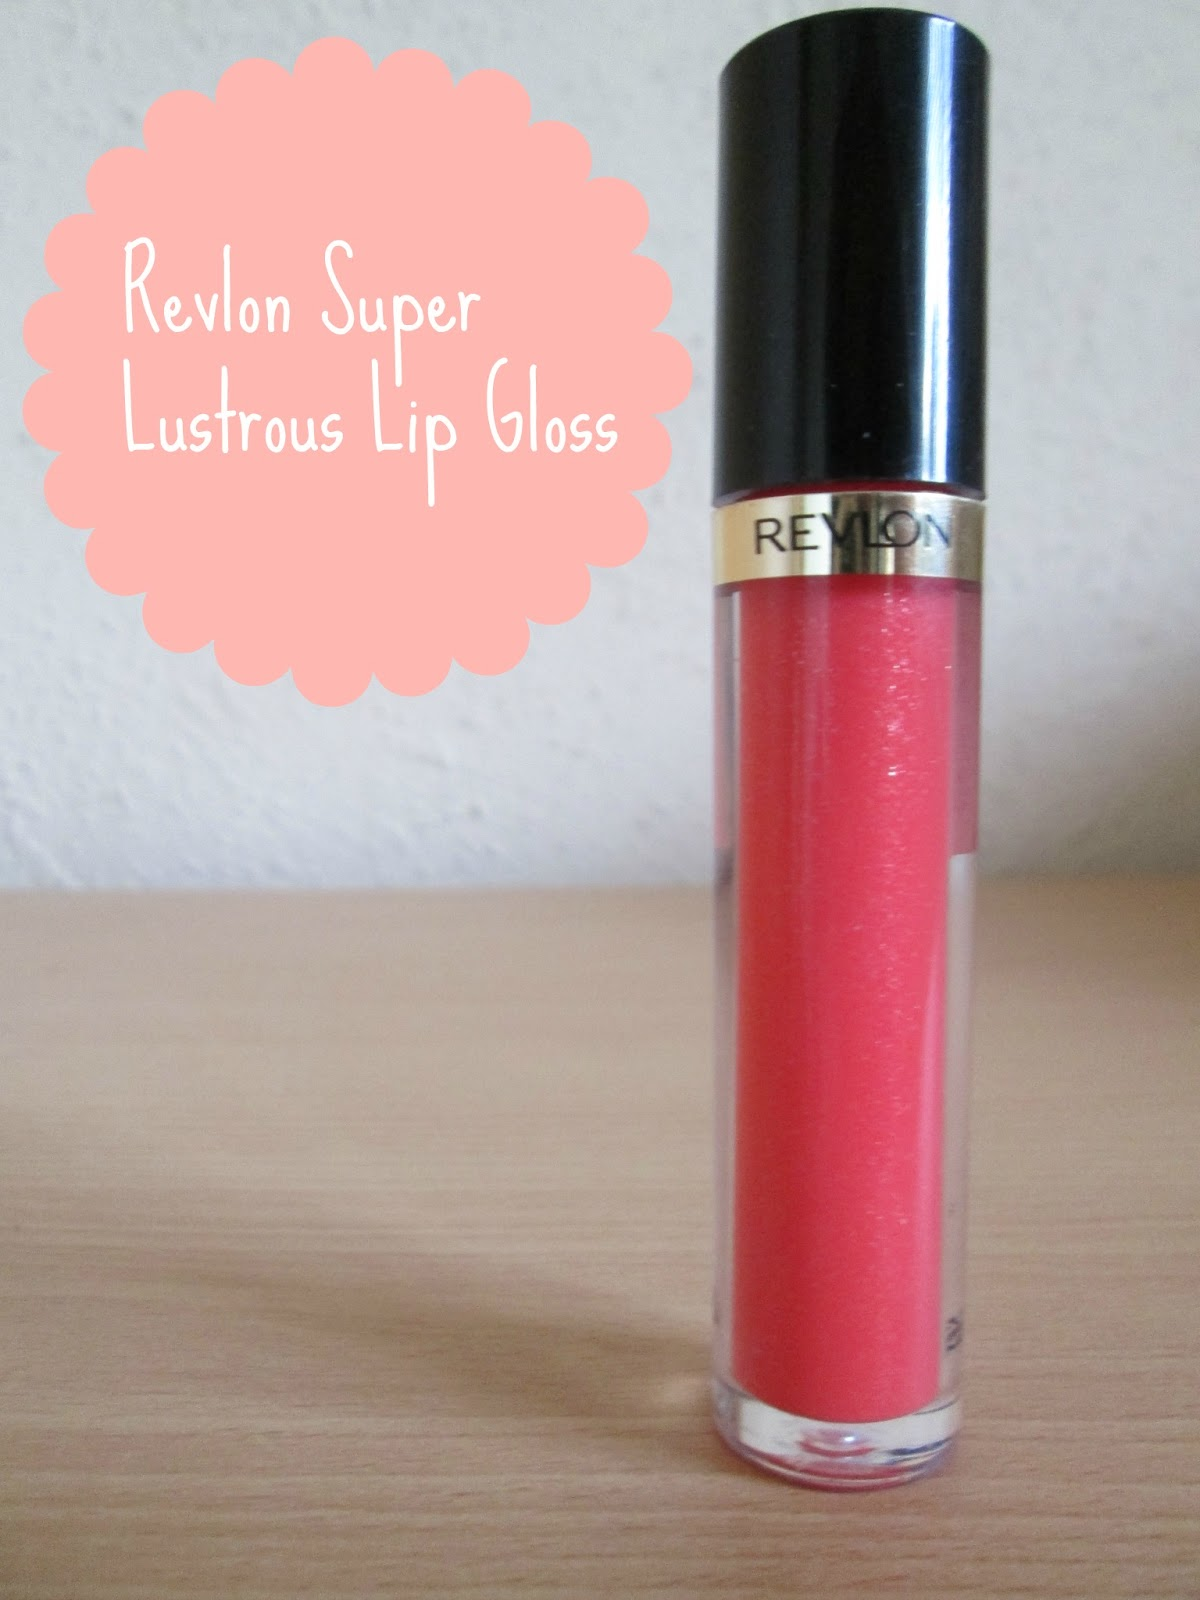 HaySparkle: Revlon Super Lustrous Lip Gloss